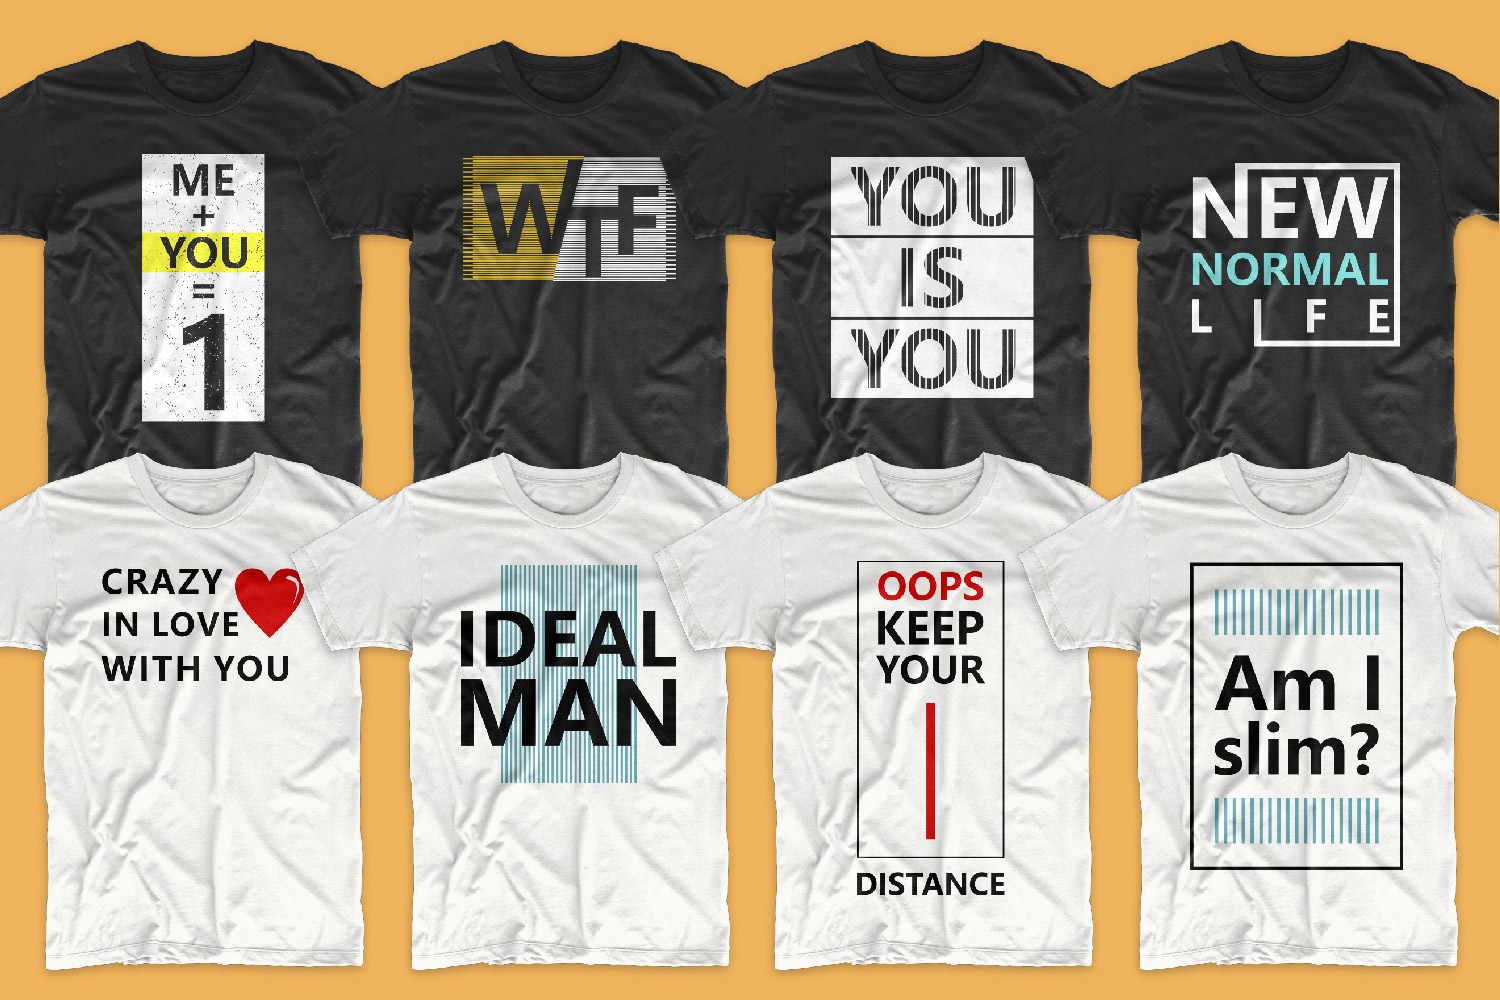 Classic white and black T-shirts with a round neck and such bright and concise phrases.